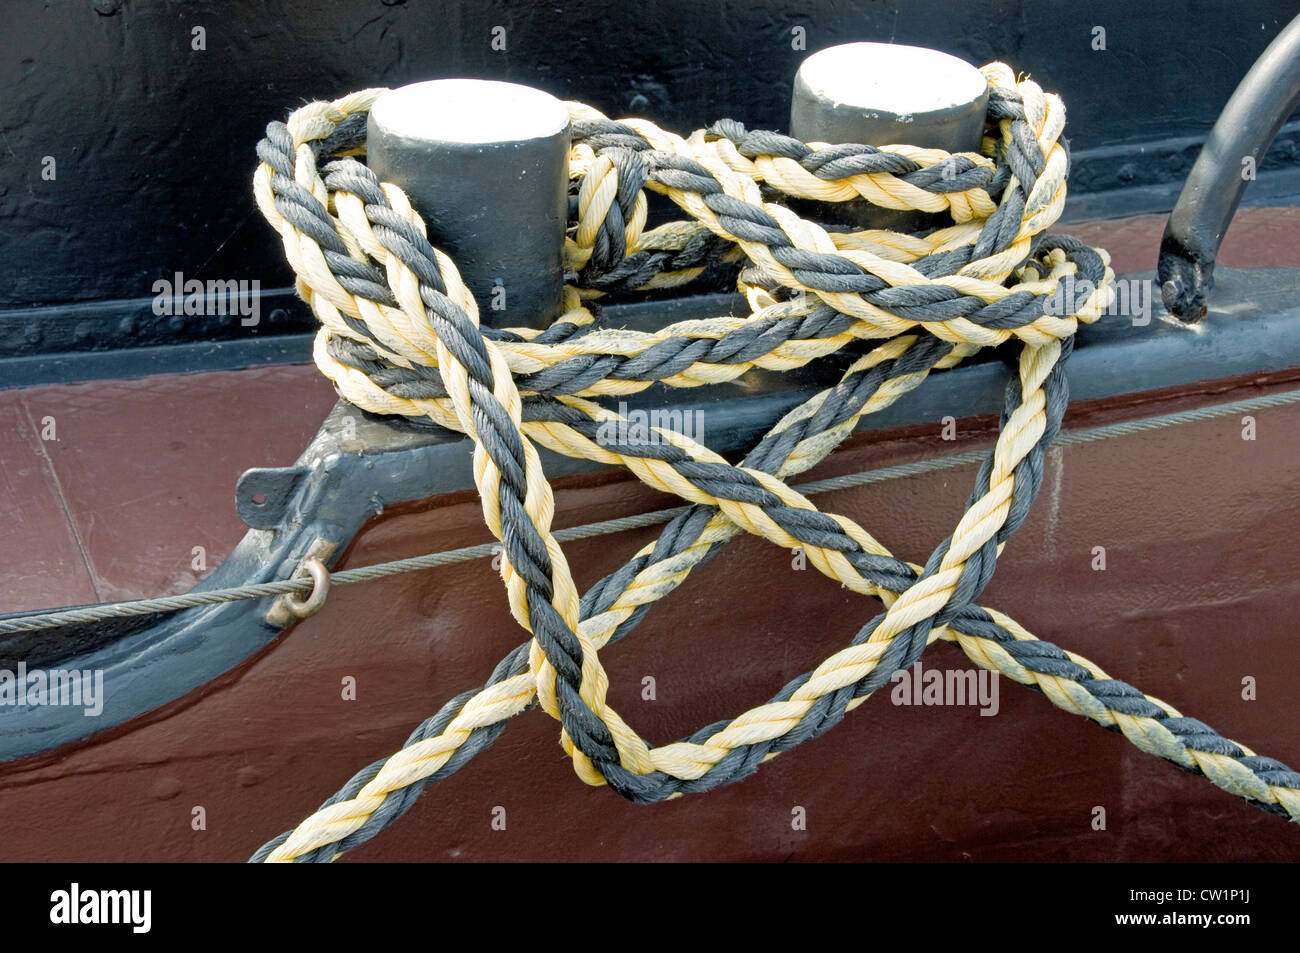 Black and yellow rope tied round mooring bollards on board boat - Stock Image